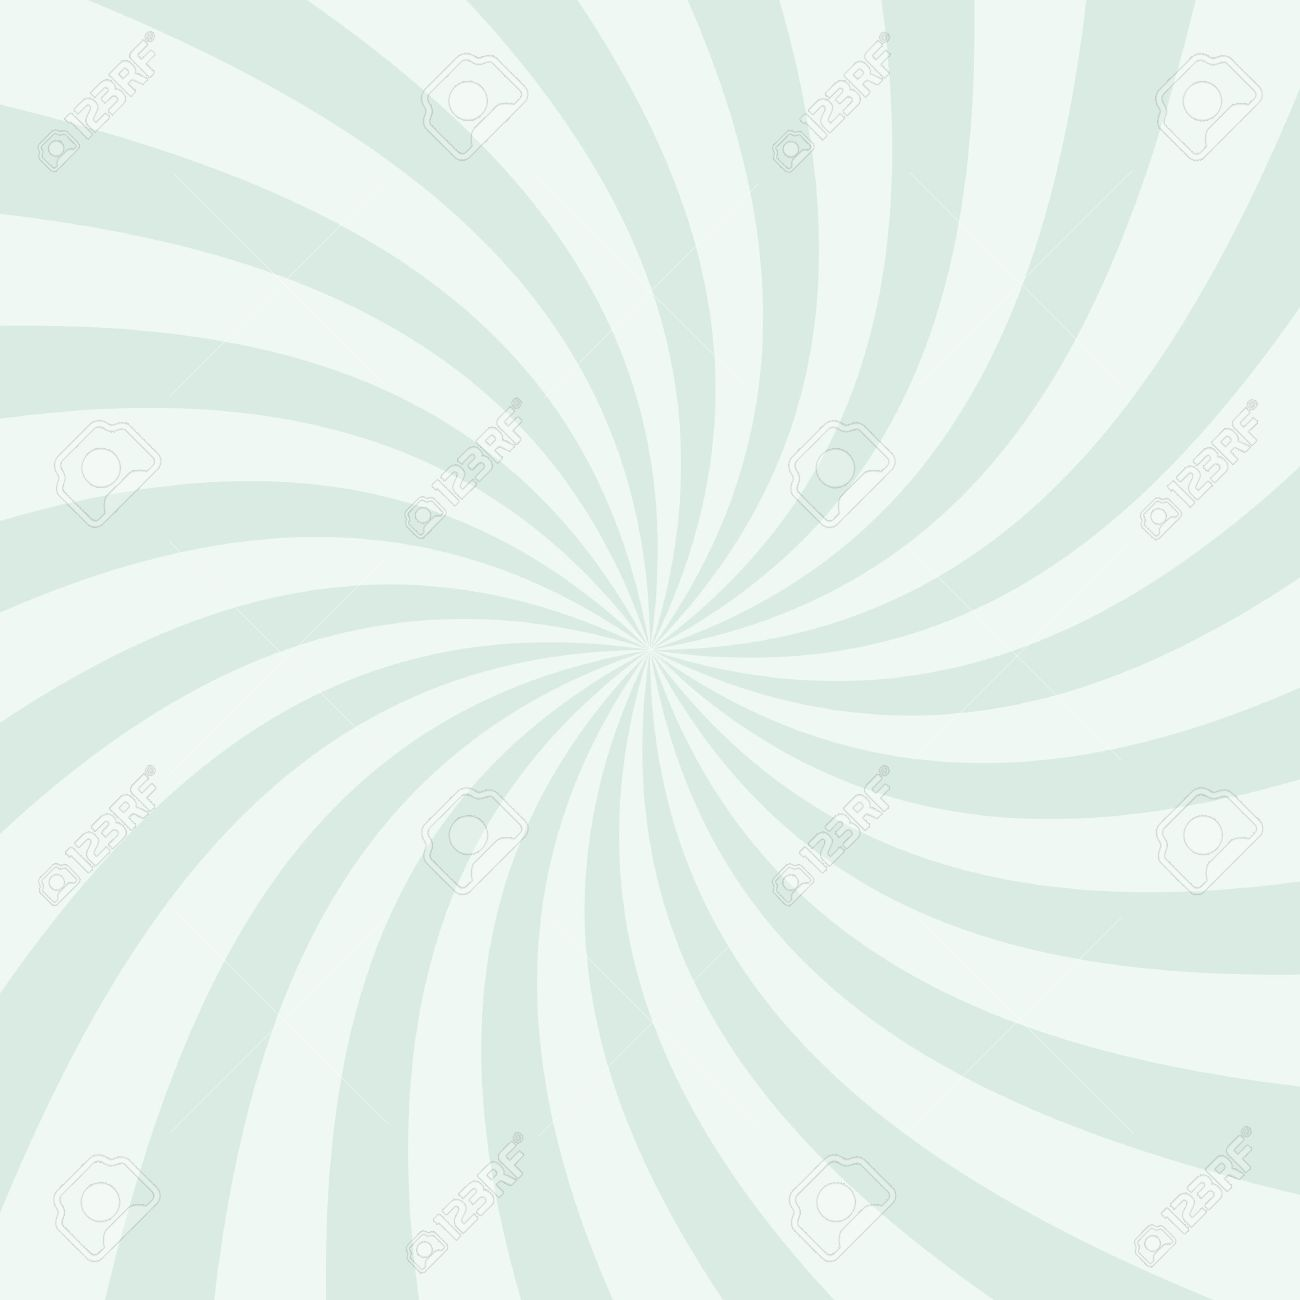 Swirling radial pattern background. Vector illustration for swirl design. Vortex starburst spiral twirl square. Helix rotation rays. Converging psychadelic scalable stripes. Fun sun light beams. - 53985683